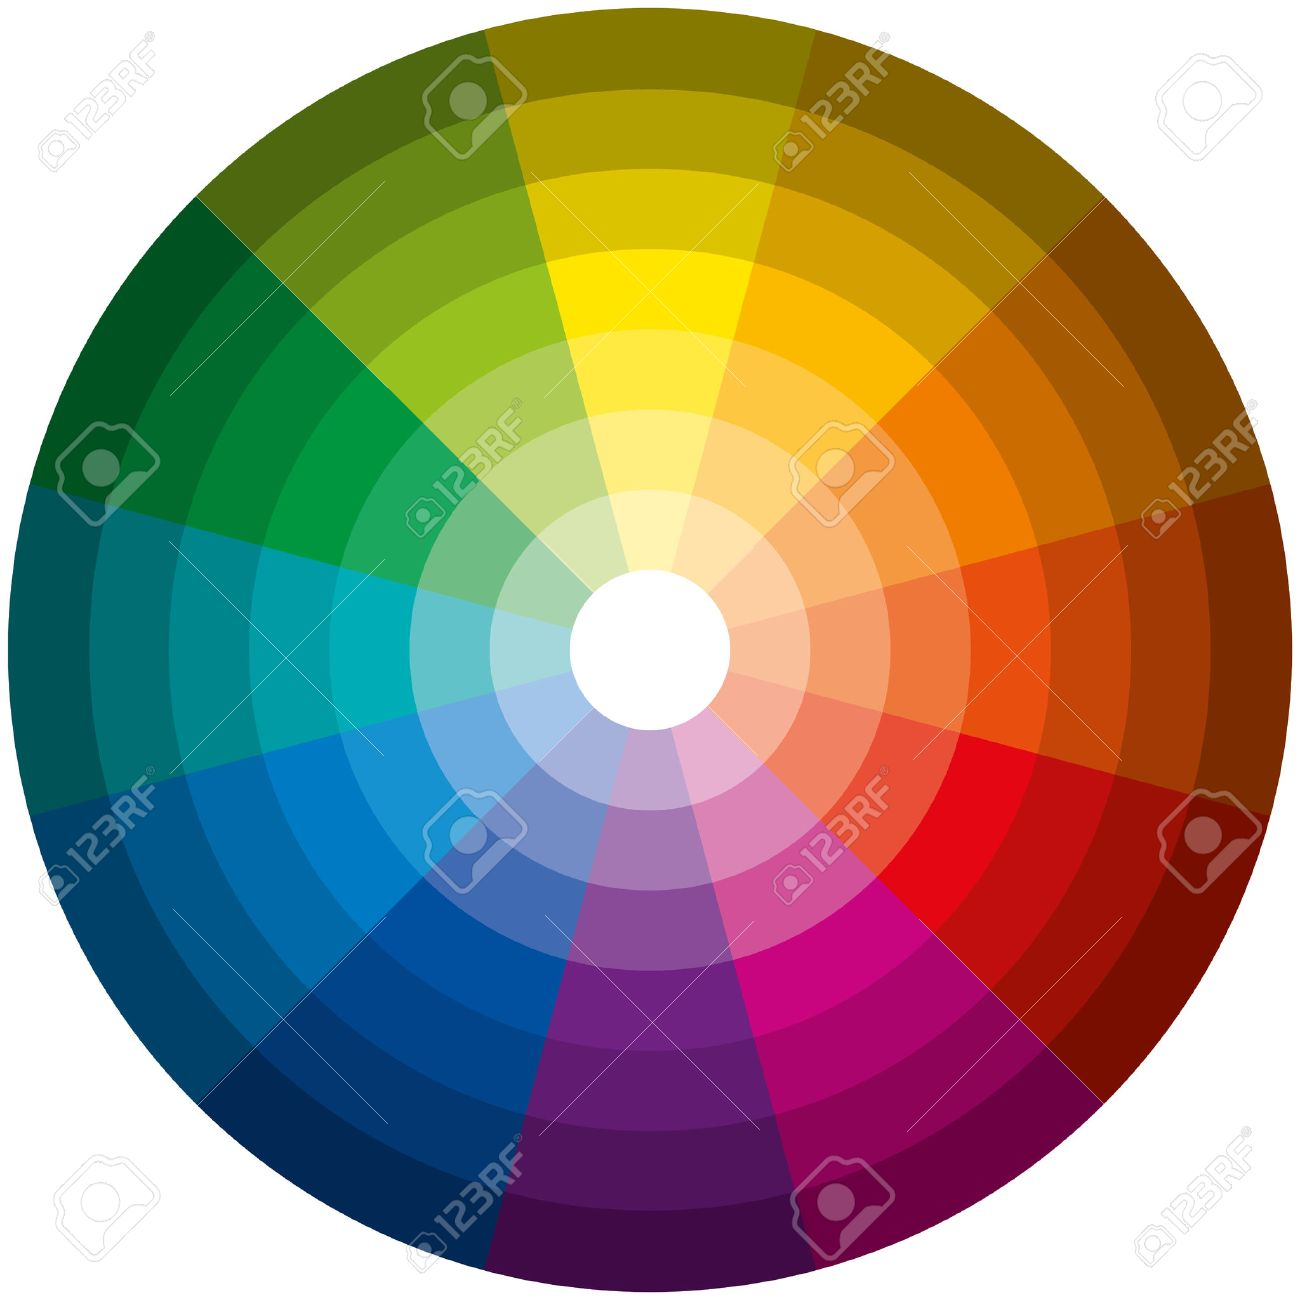 Color wheel graphic design popular with photos of color wheel exterior at design